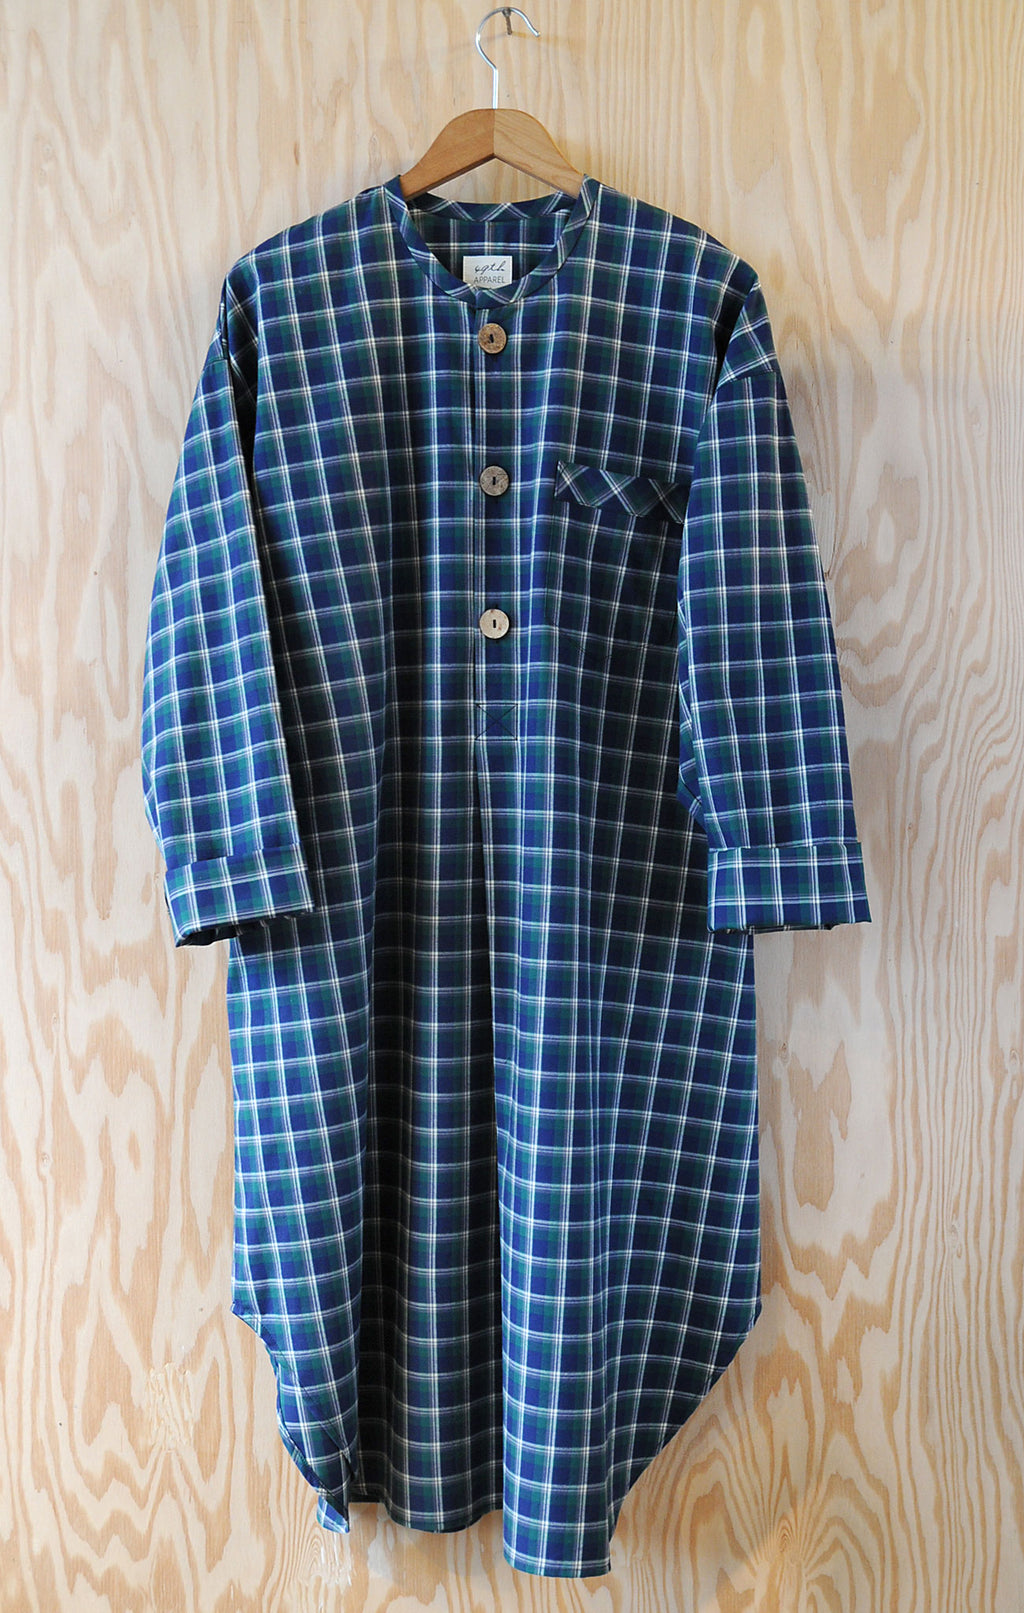 Ebeneezer Nightshirt - Ranger Lake Plaid Leaf